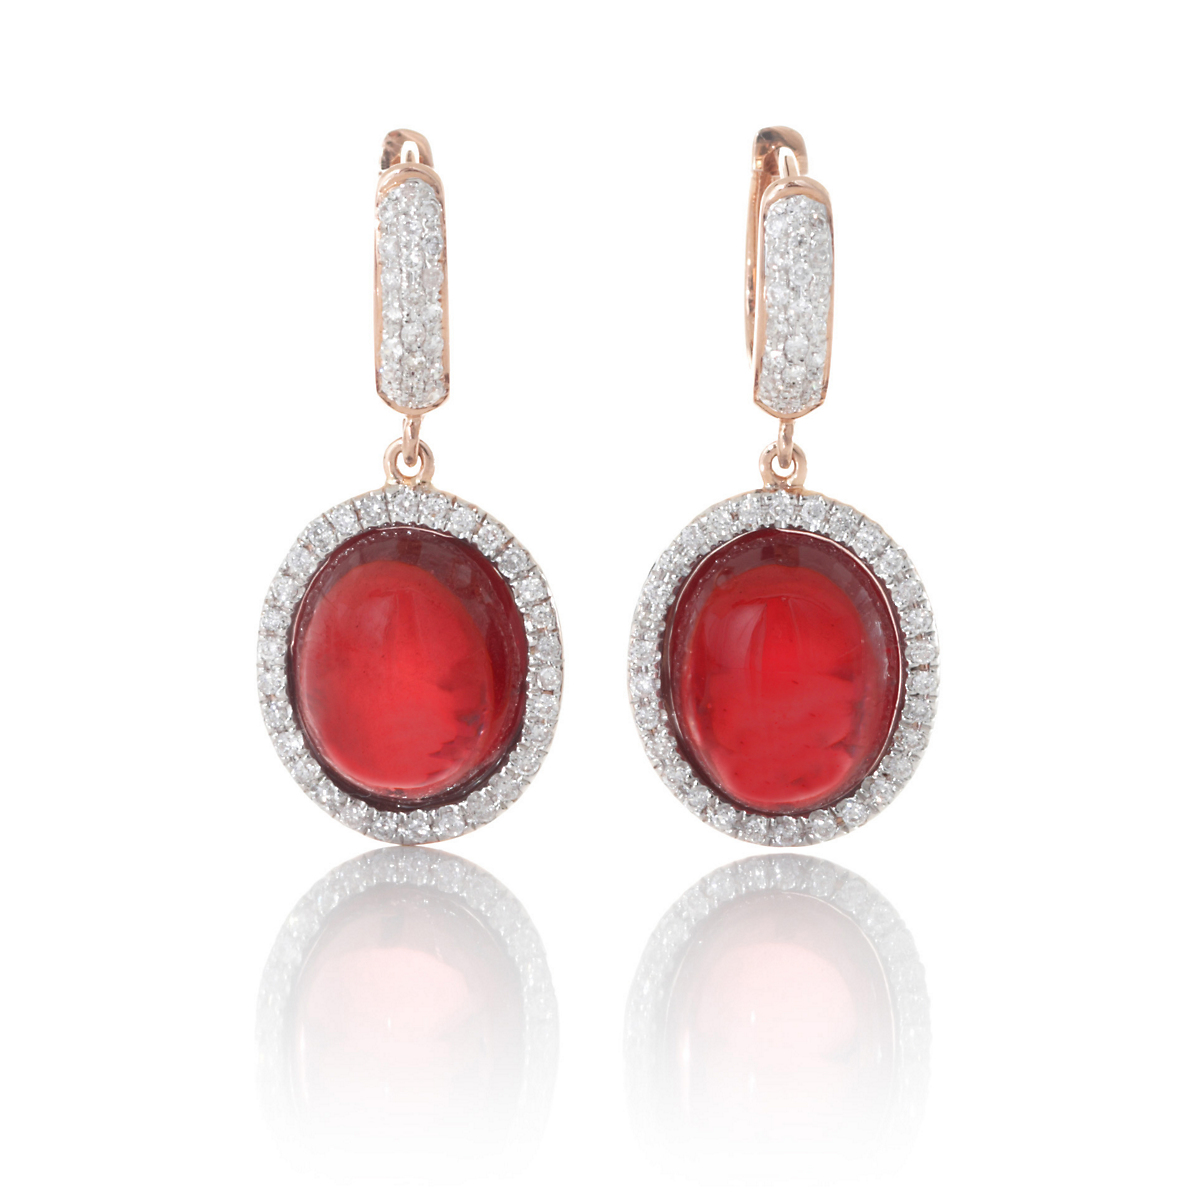 Oval Garnet With Diamonds Drop Earrings